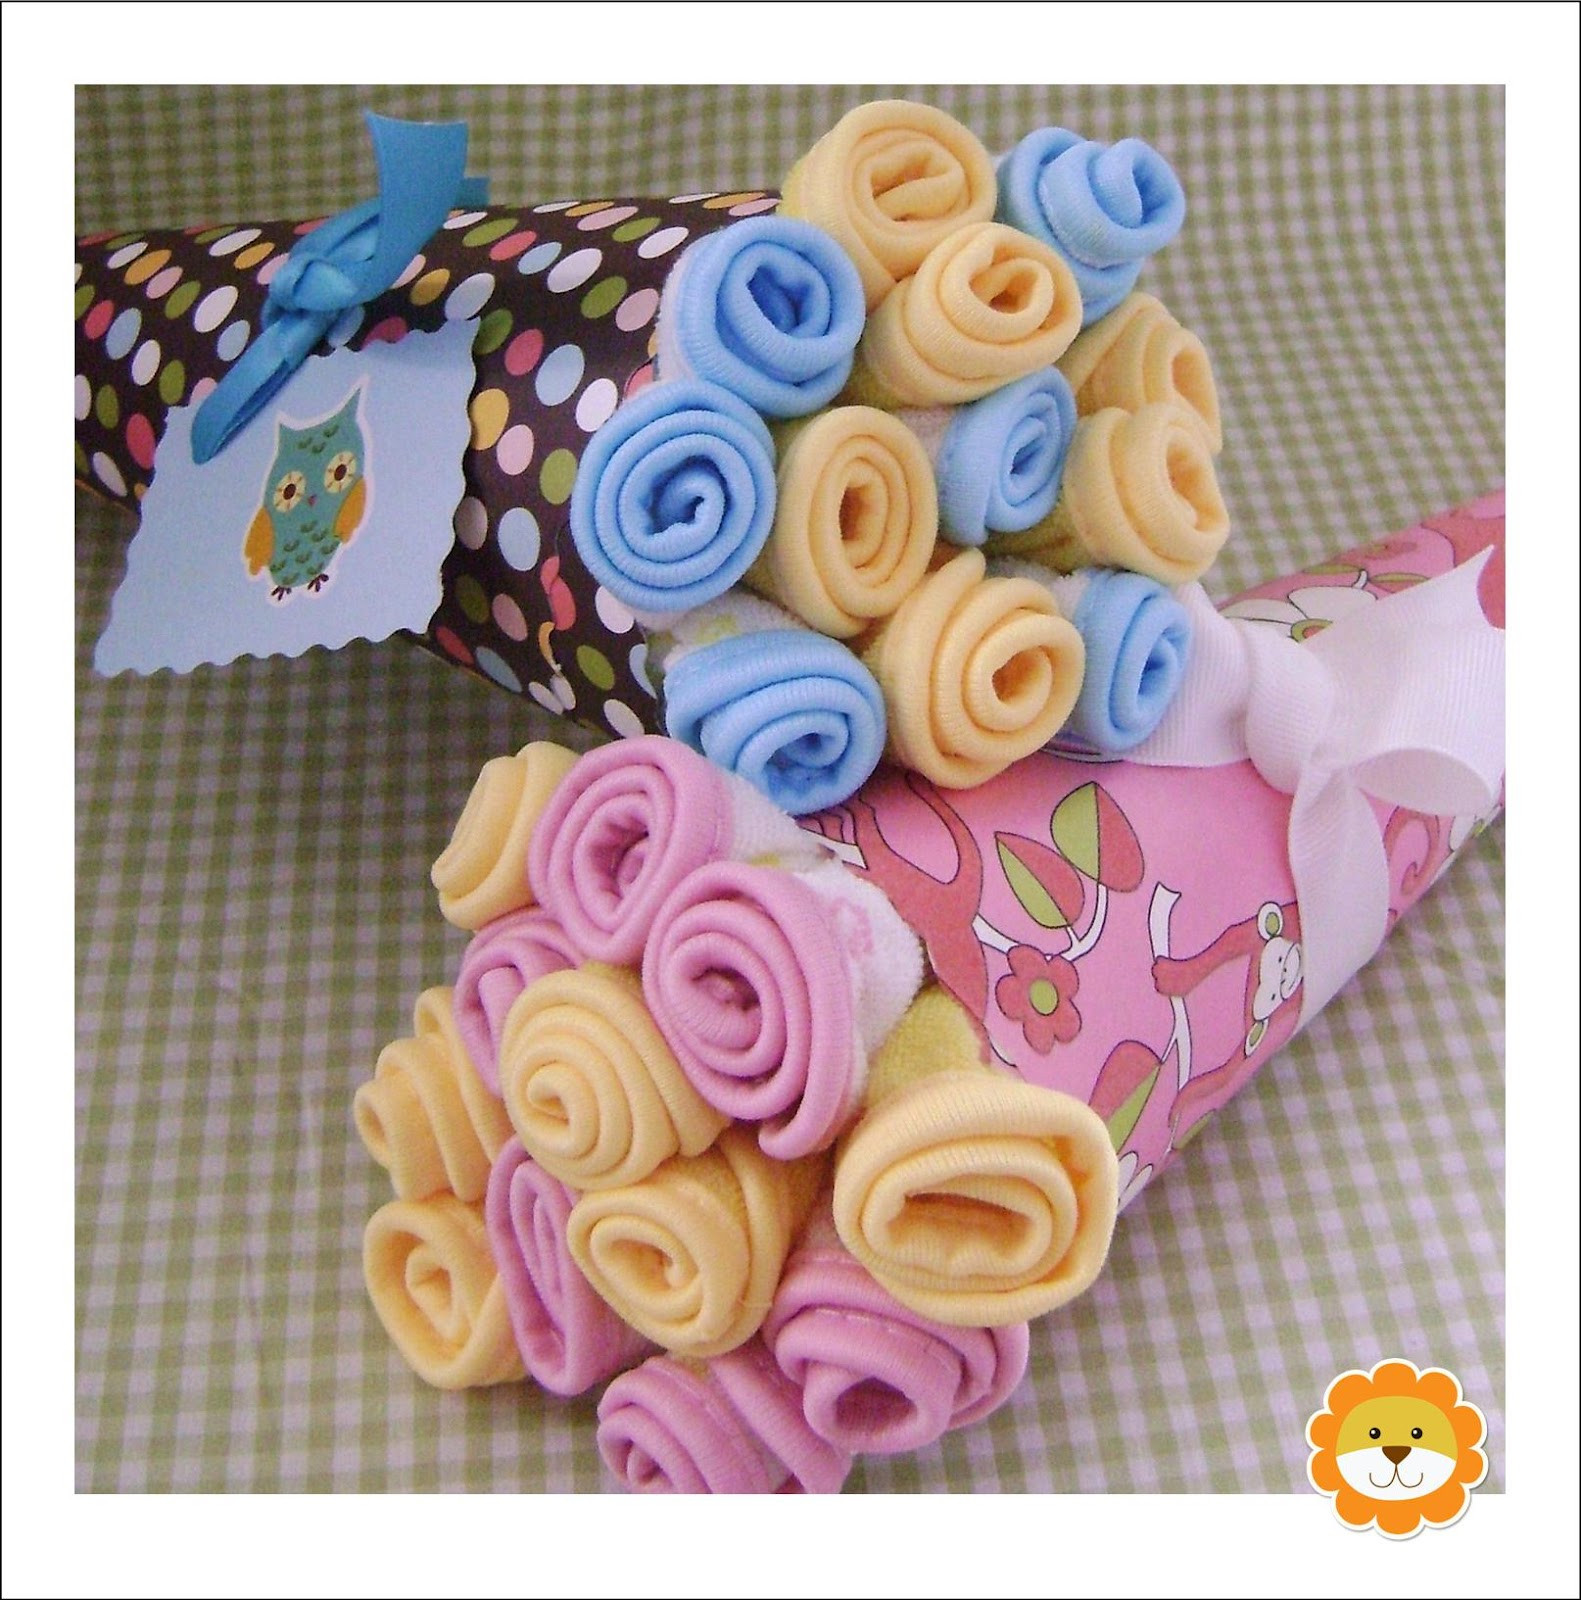 Best ideas about Gift Ideas For Baby Shower . Save or Pin It s Written on the Wall Cute Ideas for Your Baby Shower Now.